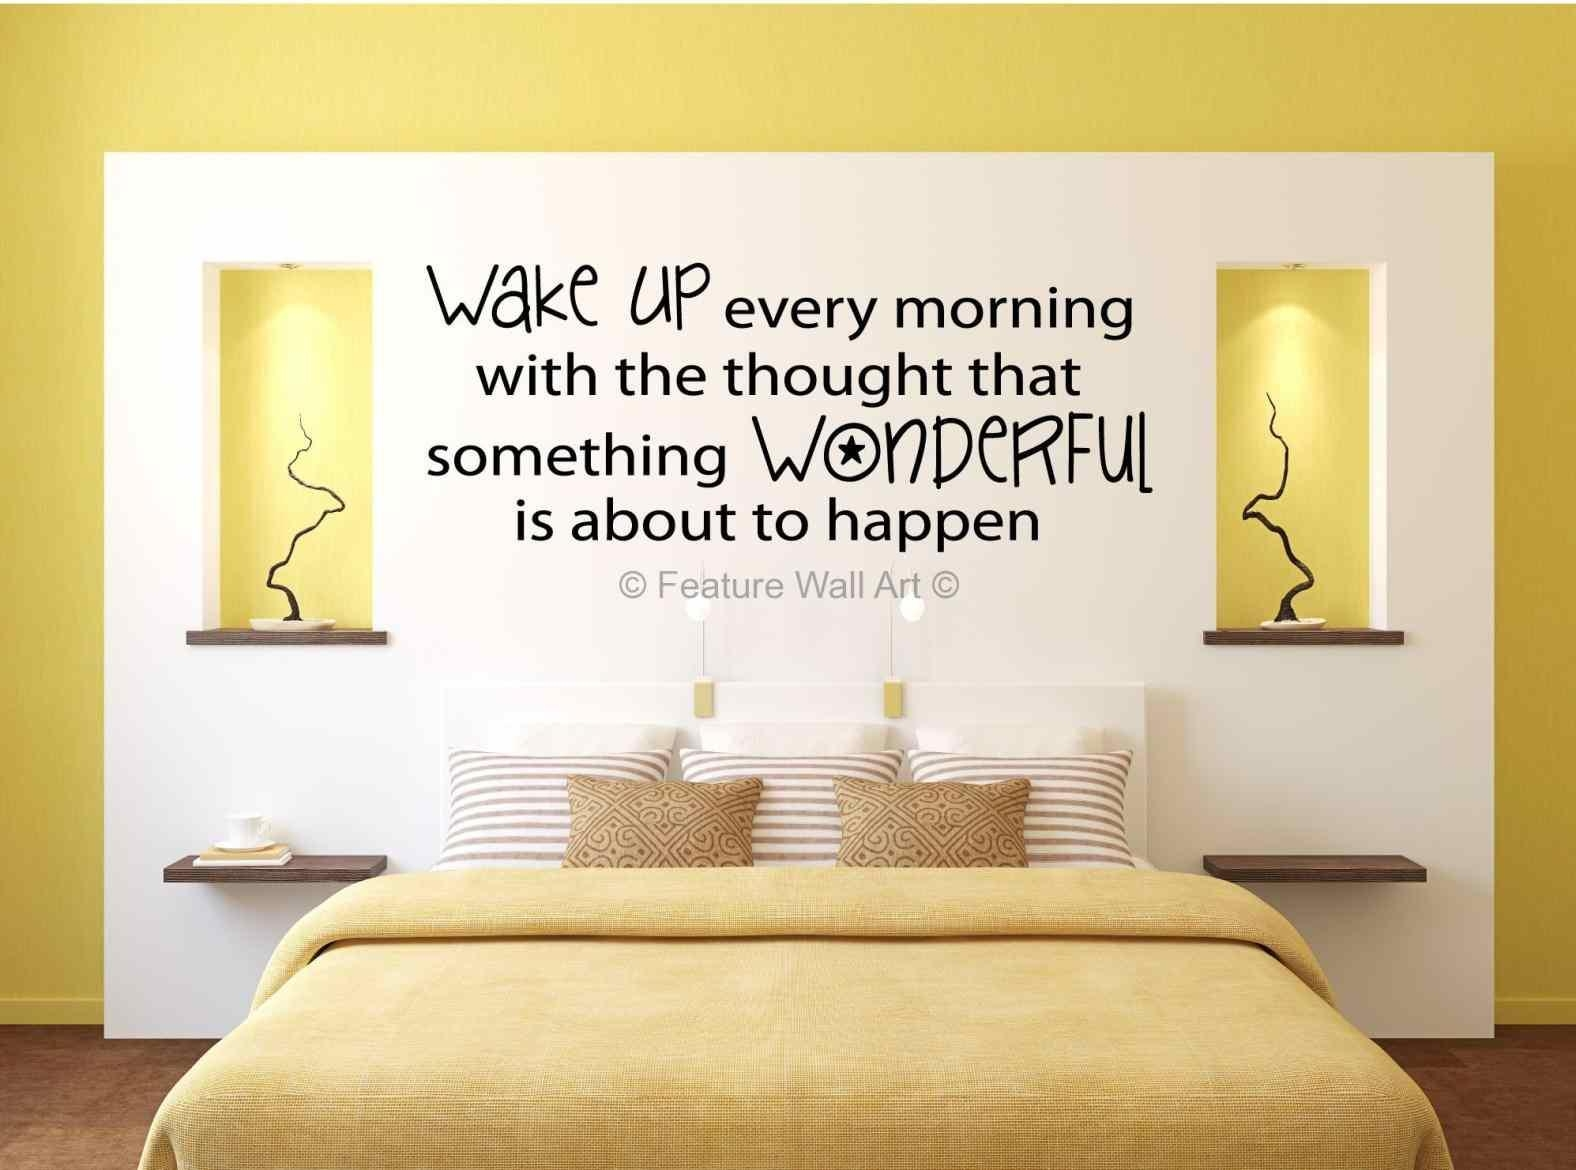 Tumblr Rooms With Quotes On Walls | Datenlabor Regarding Coco Chanel Wall Stickers (View 18 of 20)